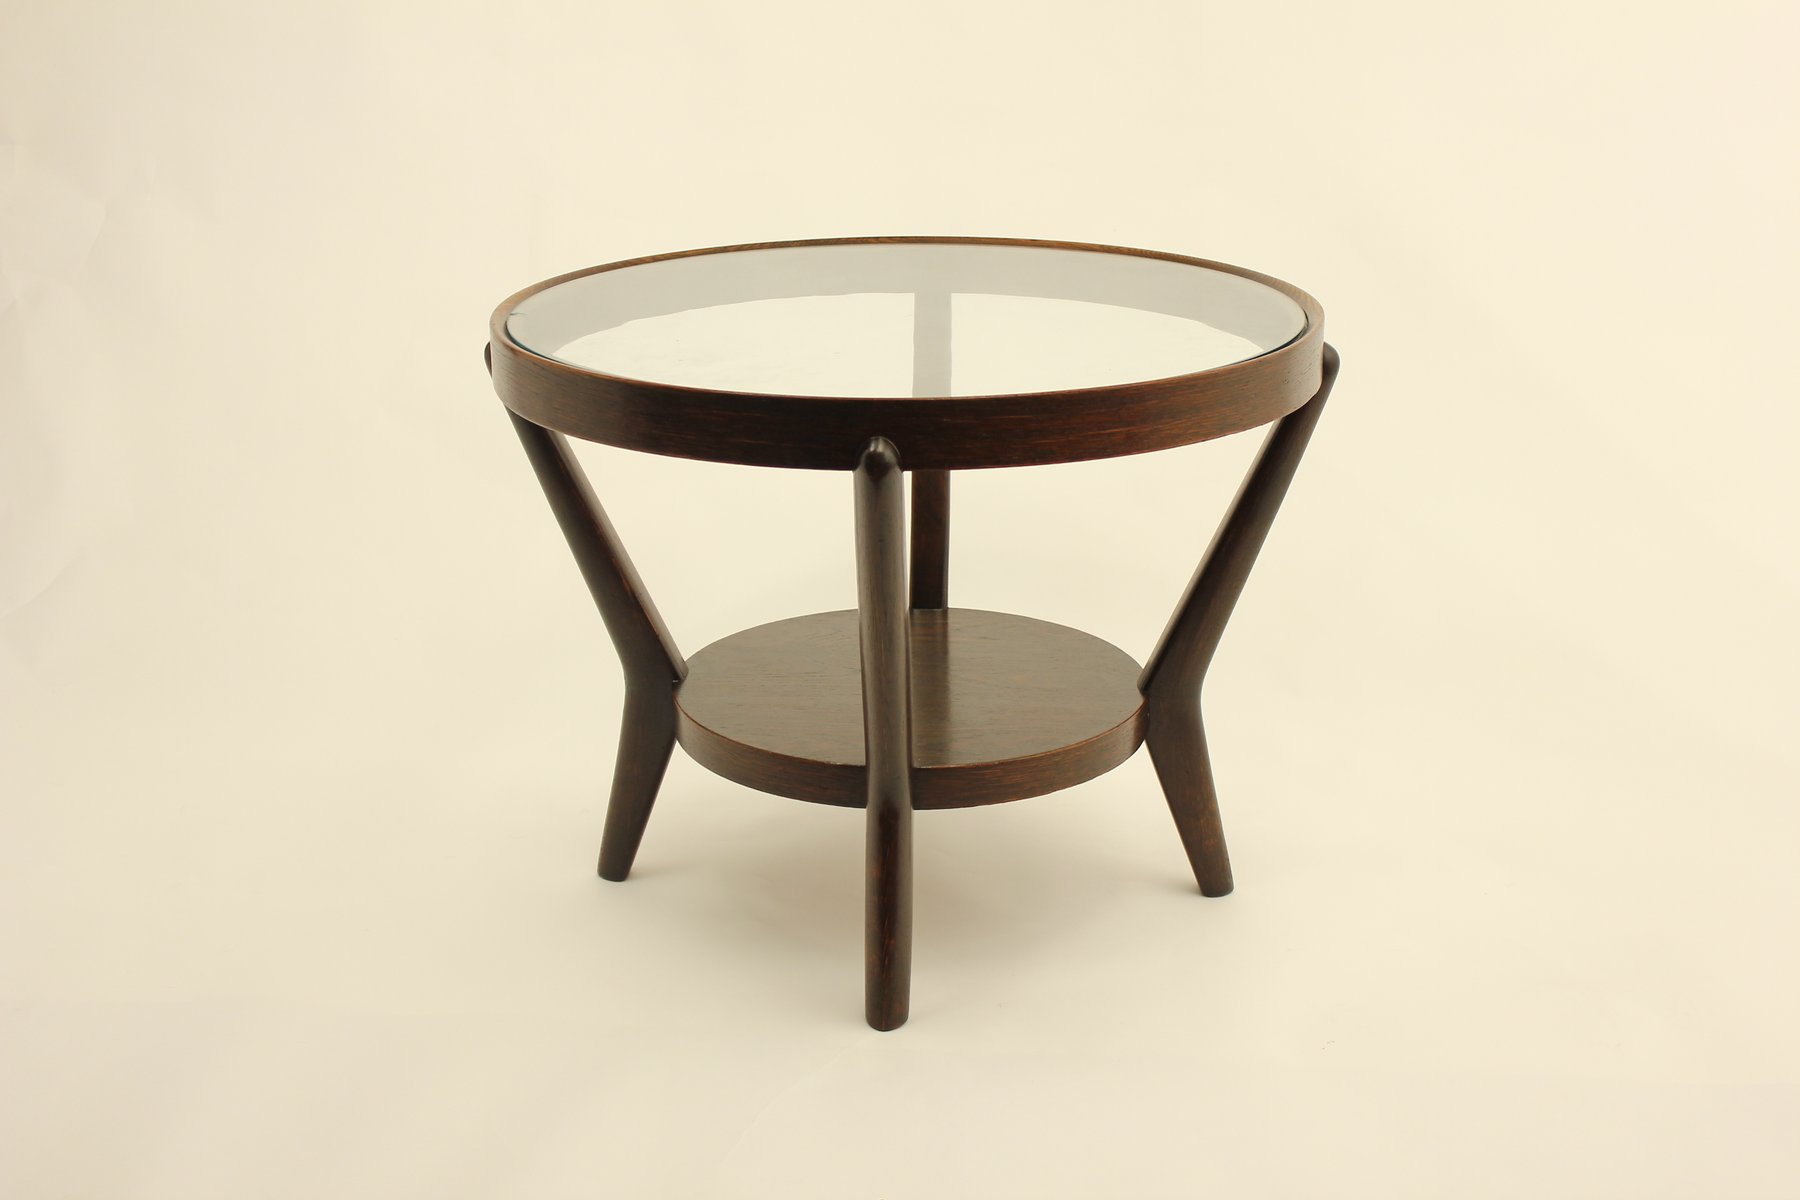 Round Function Tables Mid Century Functionalist Round Coffee Table By K Ko 3 4 Elka A